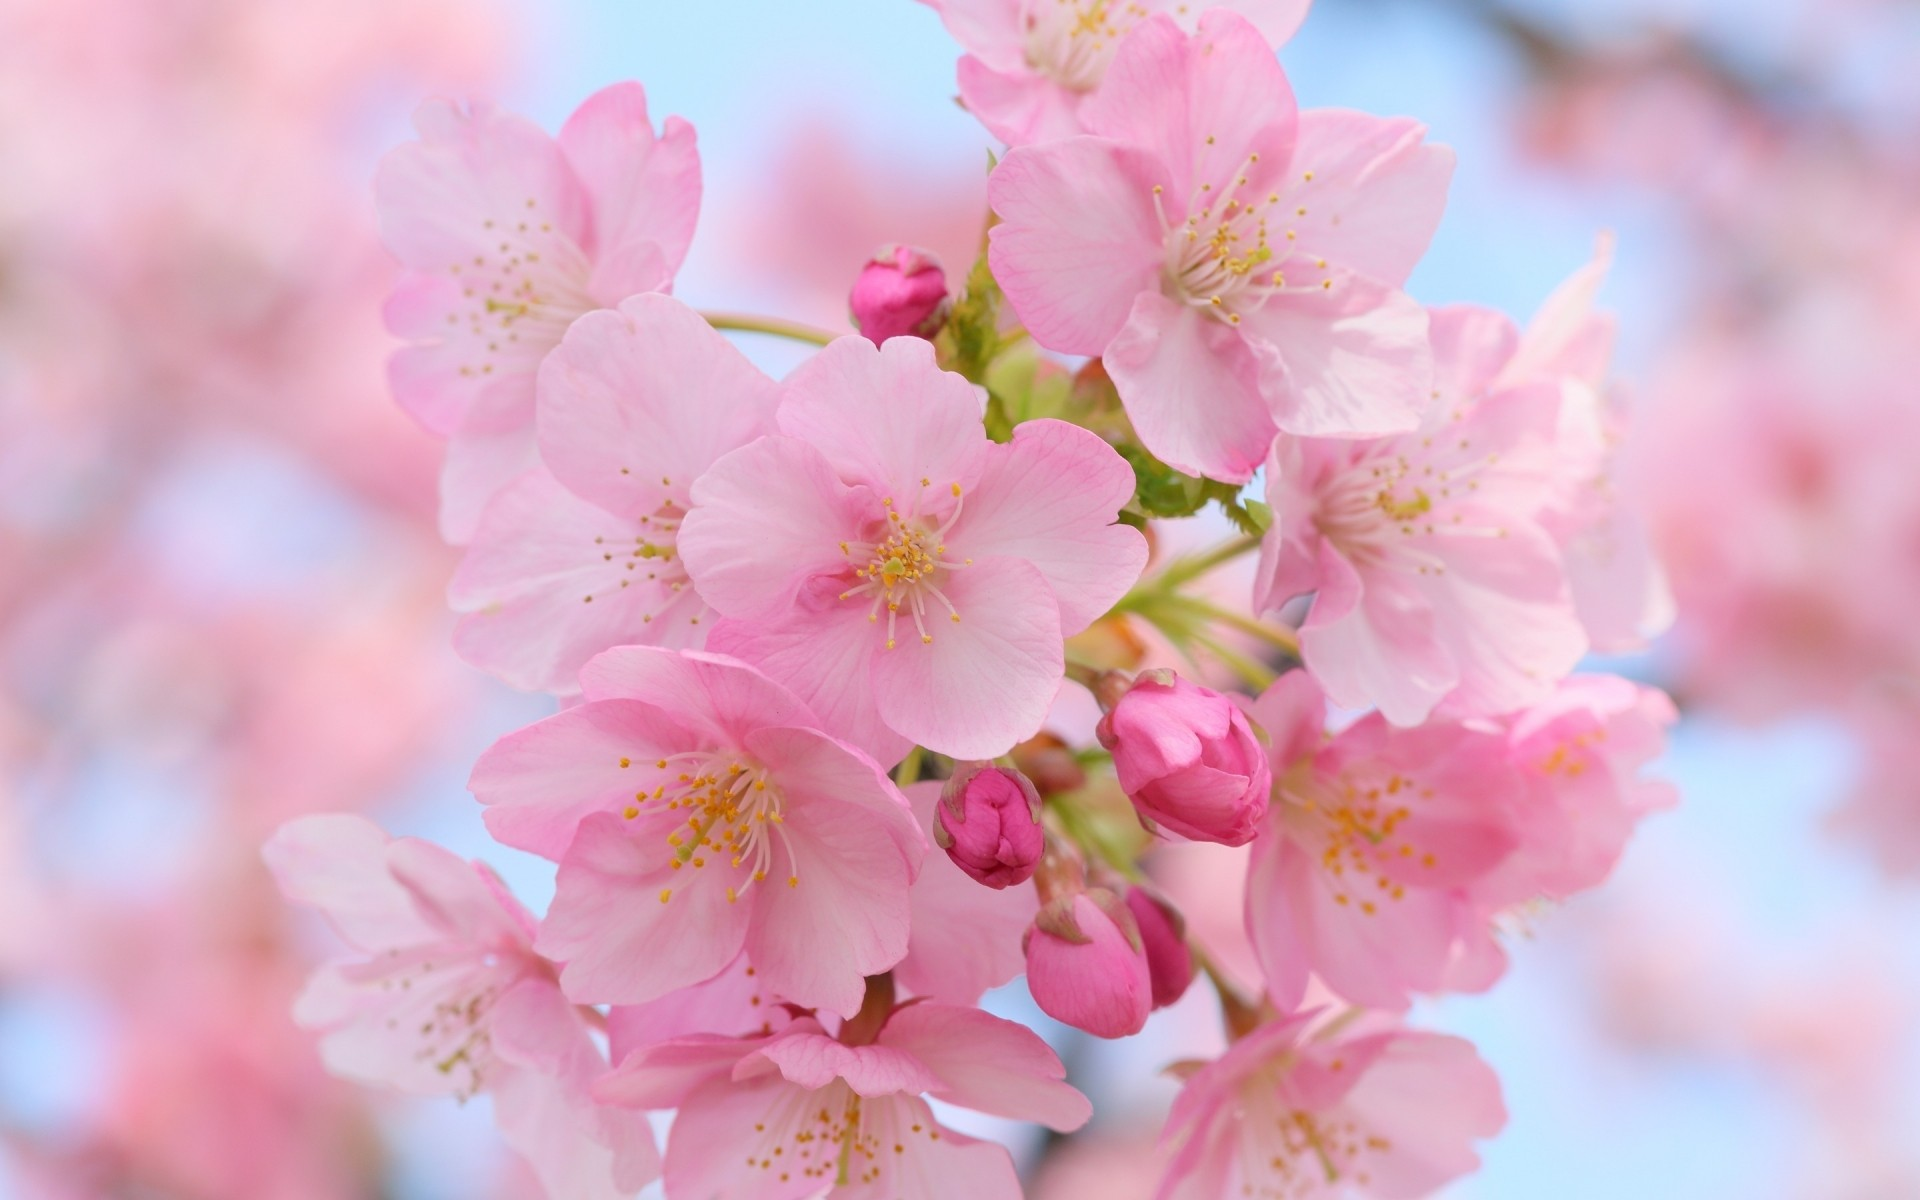 flowers flower cherry nature branch flora garden petal blooming tree leaf floral bud delicate season summer growth springtime bright outdoors pink flowers spring flowers cherry blossom